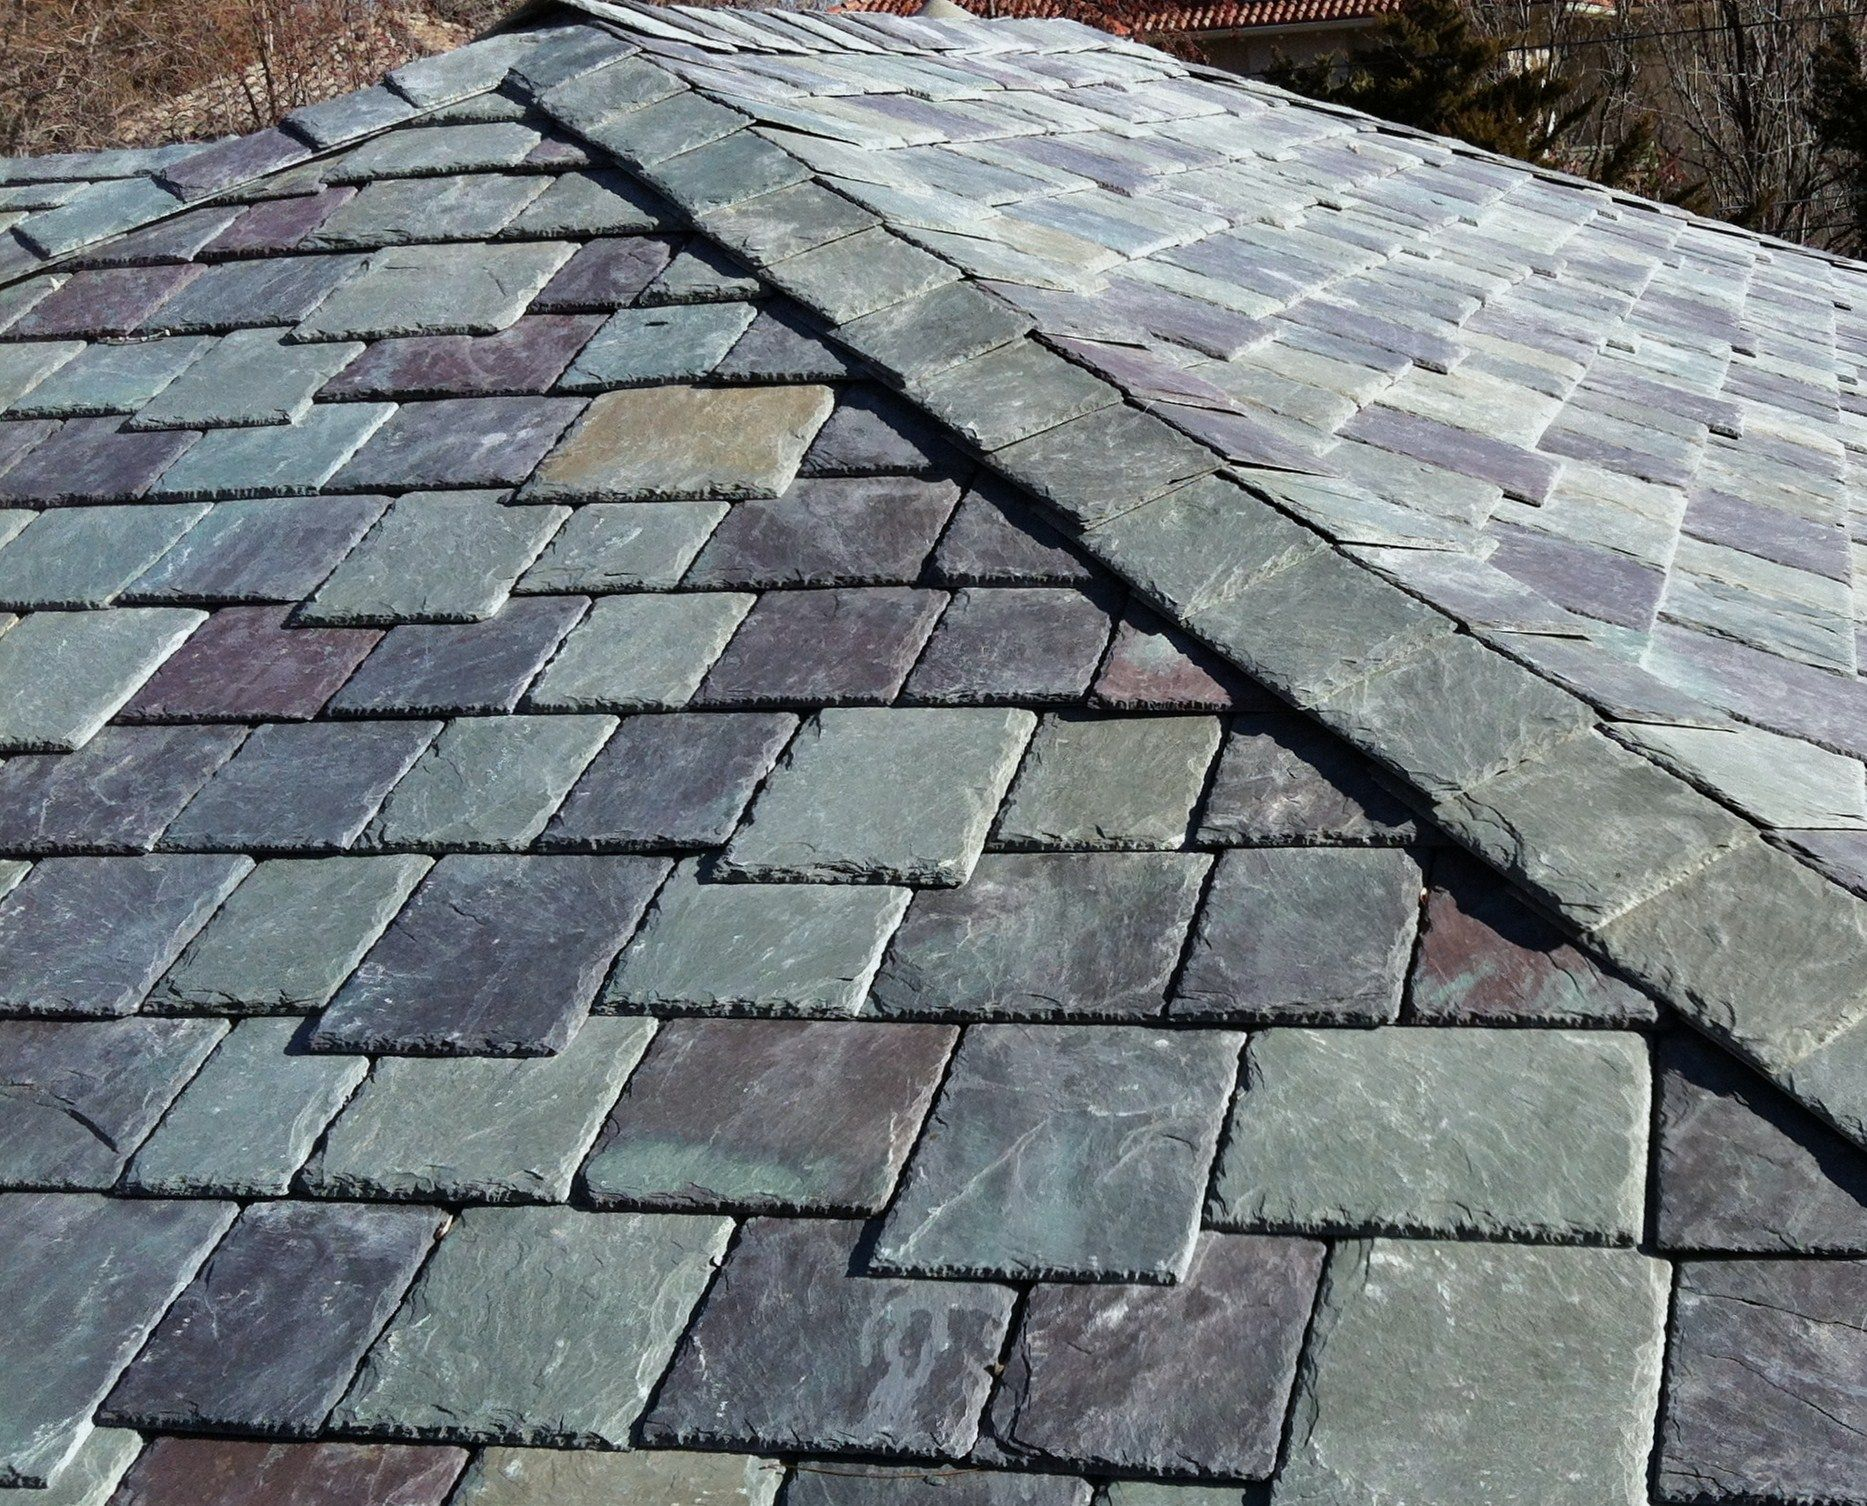 Slate Roof Tiles   Forget Roof Tiles, Angled Tiles On A Path Thru The Garden